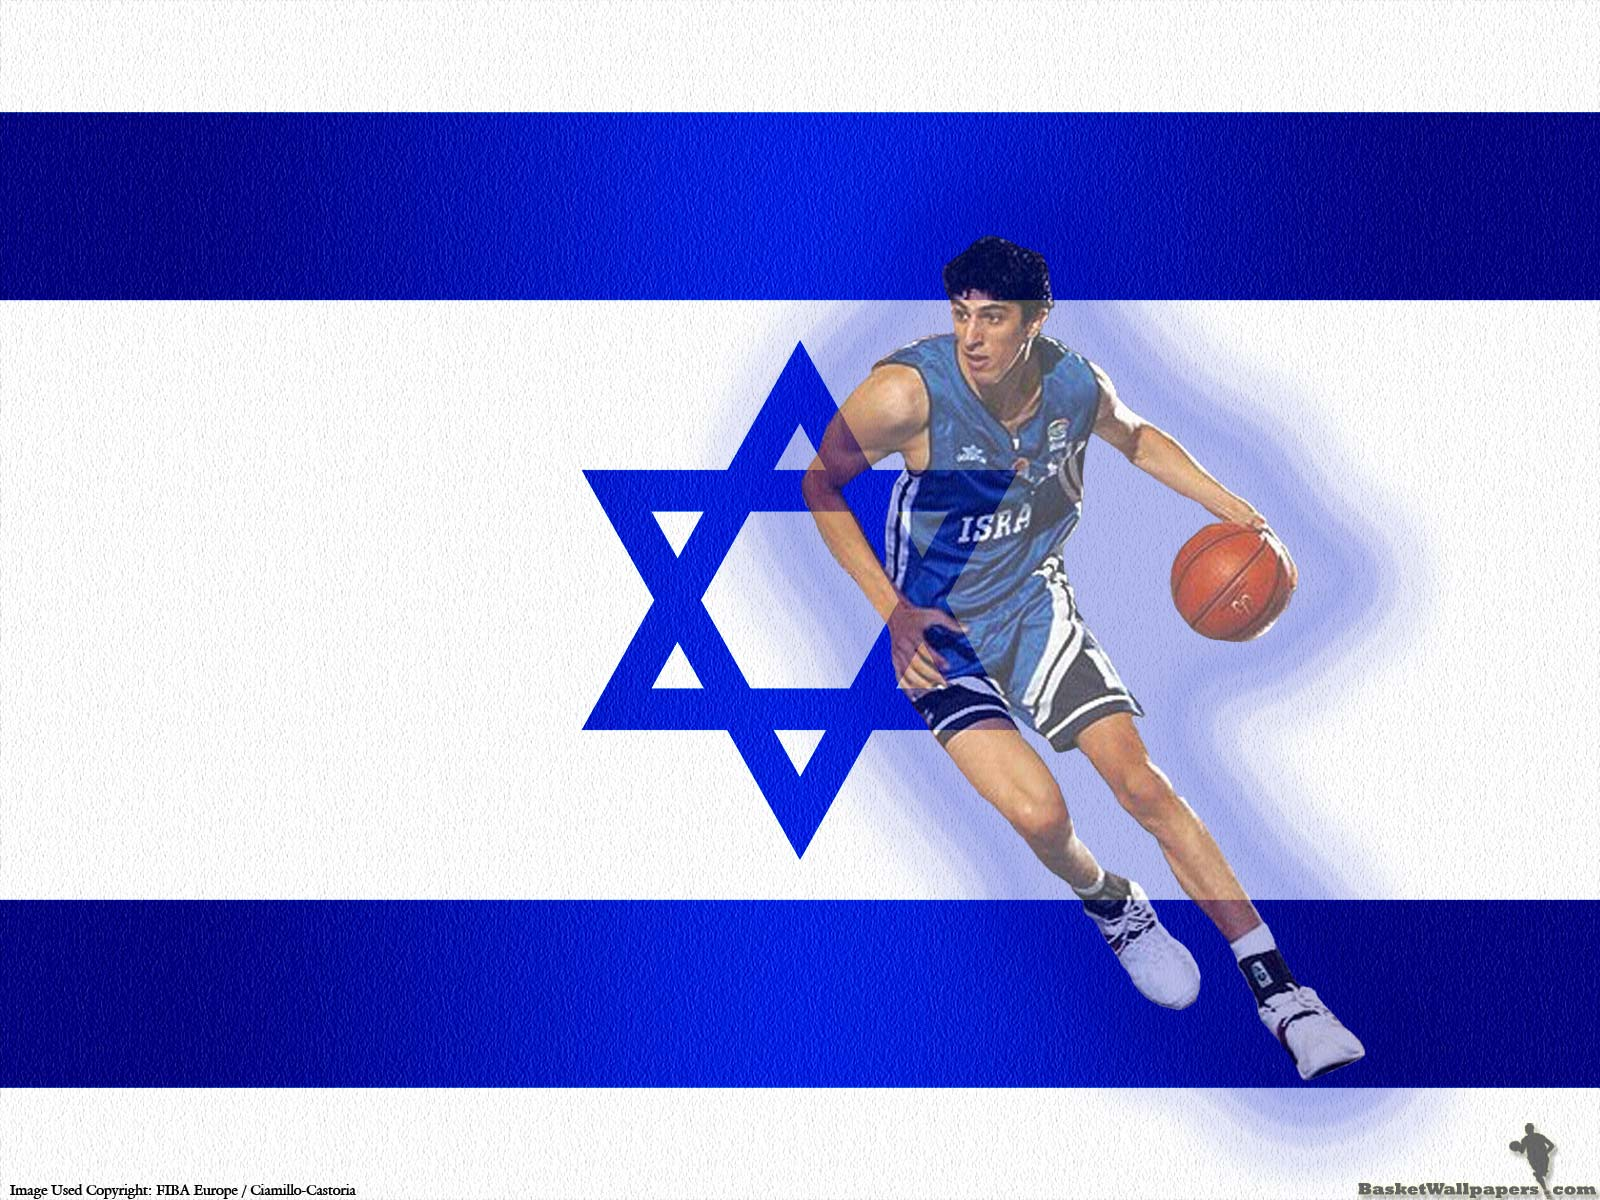 was one of Israel national